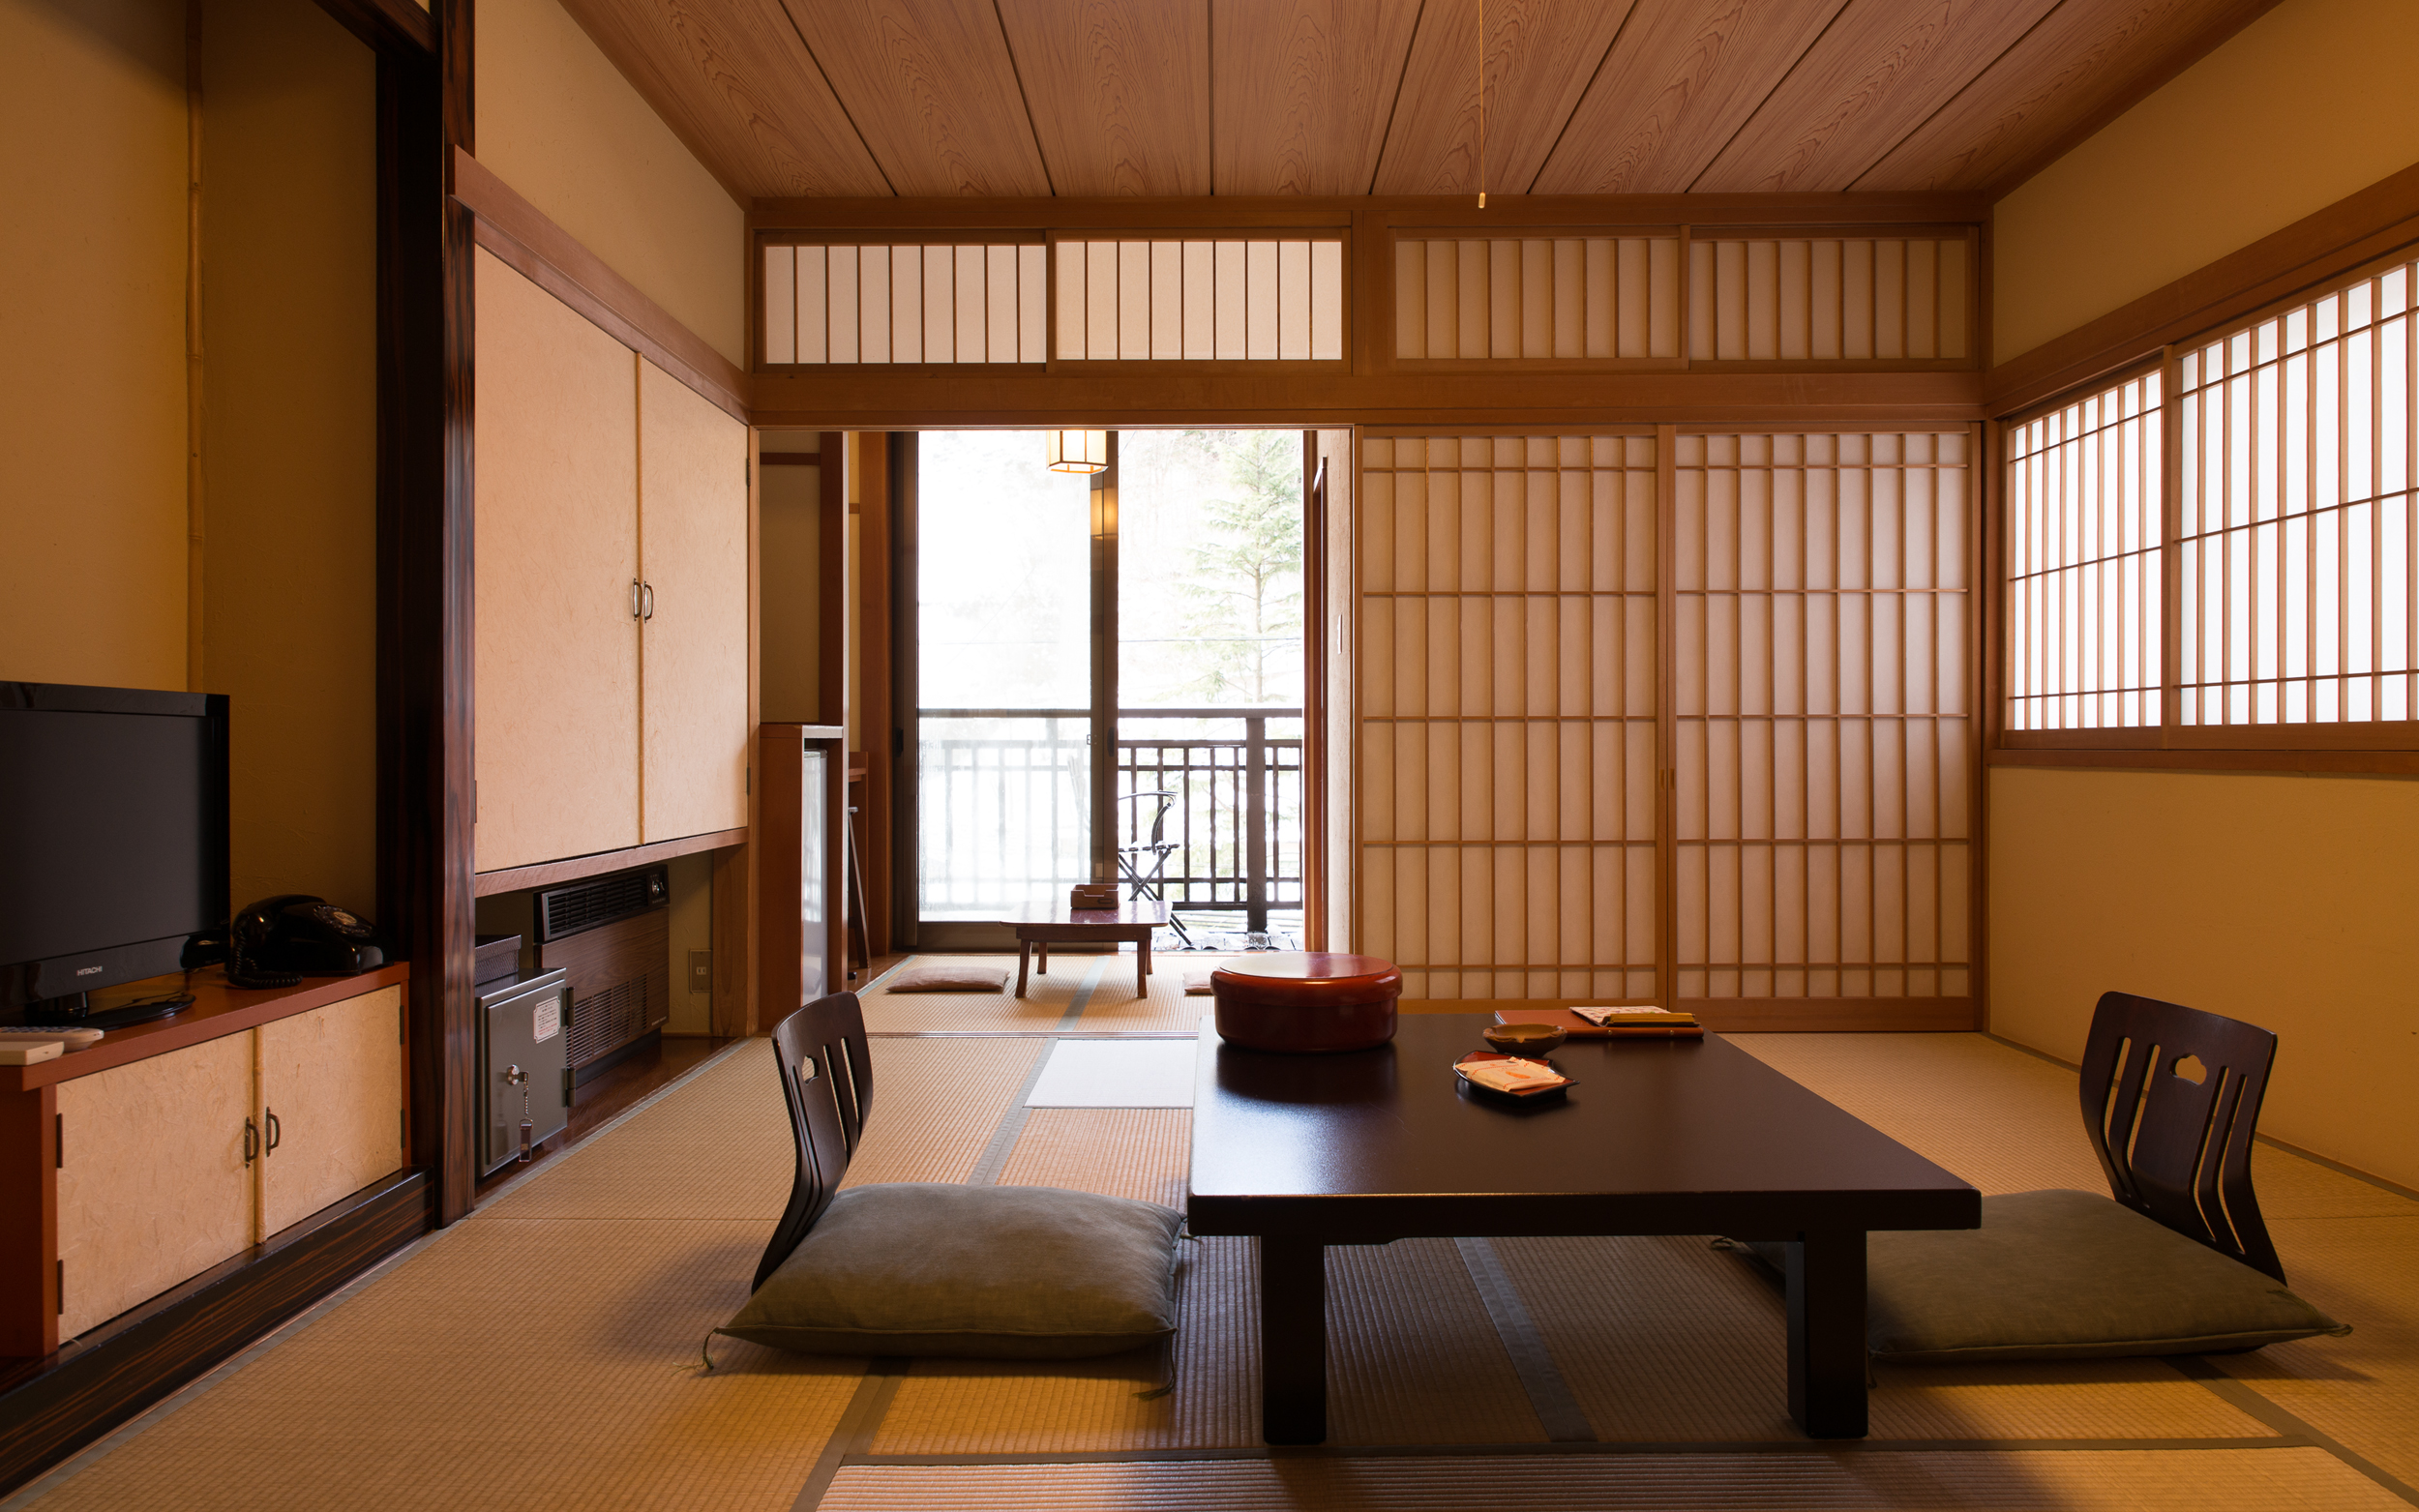 About Basic Etiquette Rules And Manners At Ryokan